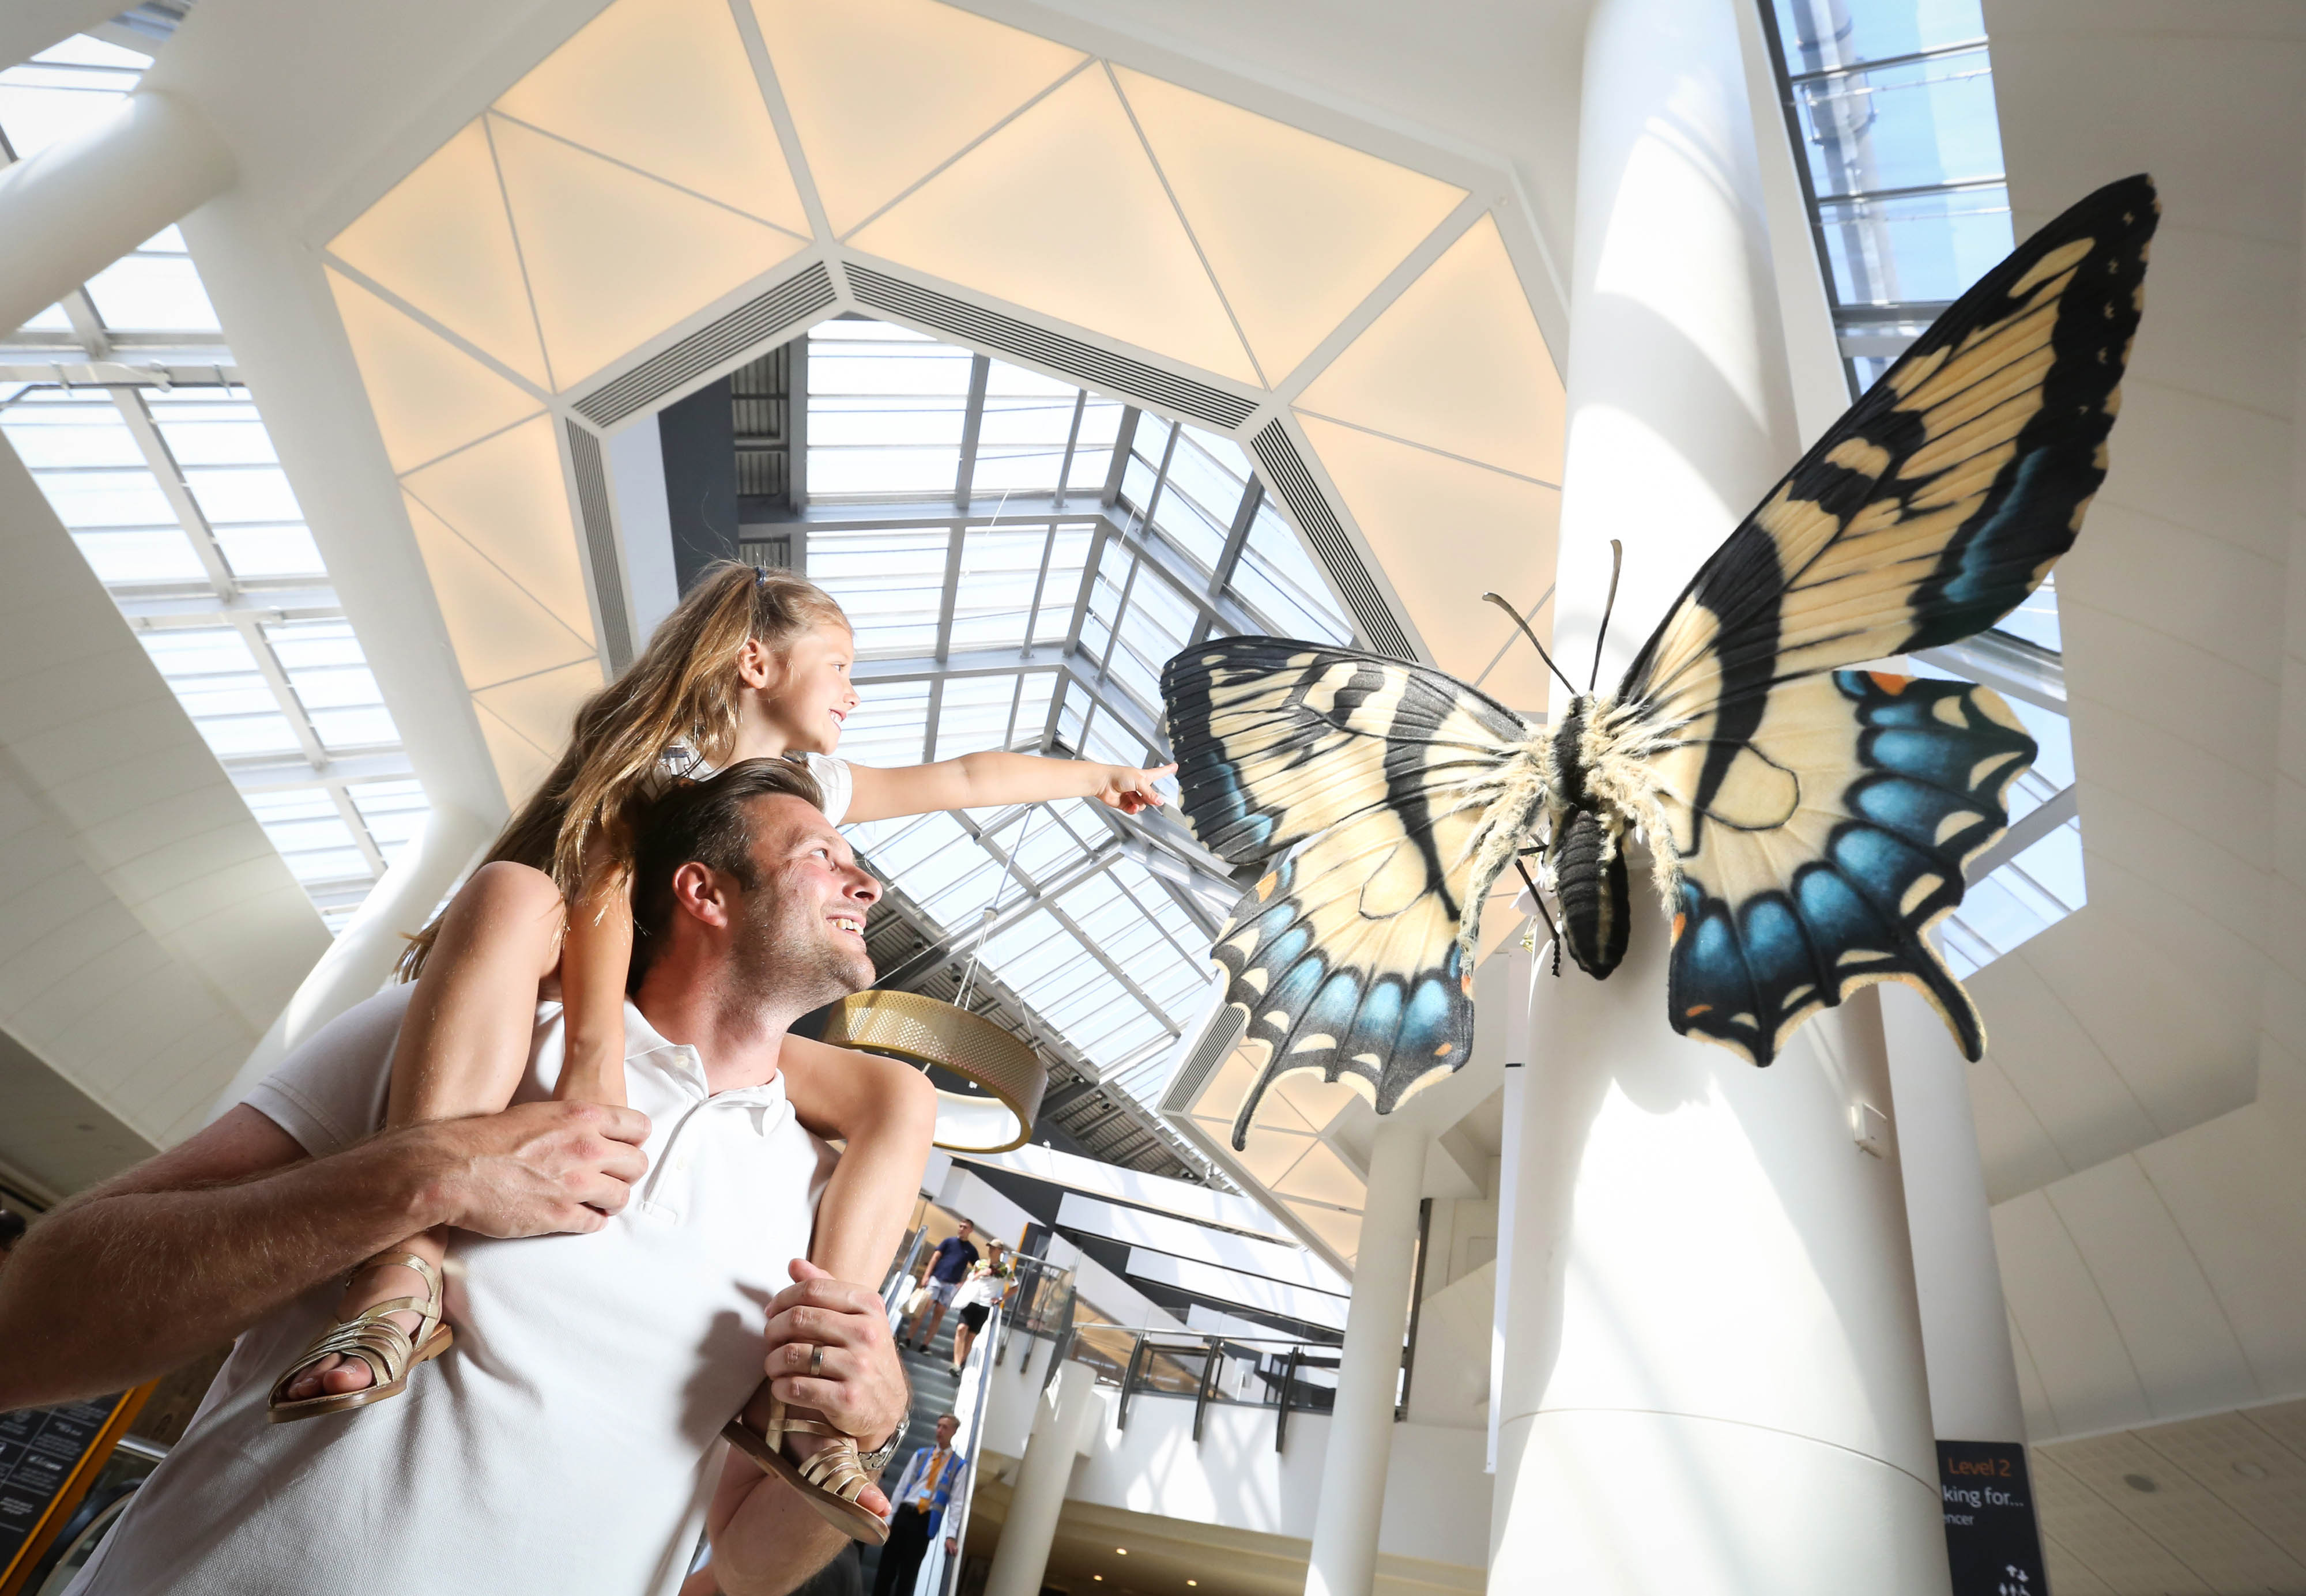 EDITORIAL USE ONLY Lee Riddell and his daughter Eva, aged 6, interact with a 9ft wide lifelike model of a Swallowtail Butterfly at the launch of Big Bugs on Tour at intu Lakeside, which is a year-long initiative designed to reconnect people with nature. The bugs have been created following research that found being closer to nature makes you 67 per cent happier, yet one in six children haven't seen a single bug in six months, one in ten kids don't know honey came from bees, and one in four parents can't tell the difference between a bee and a wasp. The tour will be visiting 13 intu centres nationwide over the next year. Photo credit should read: Matt Alexander/intu